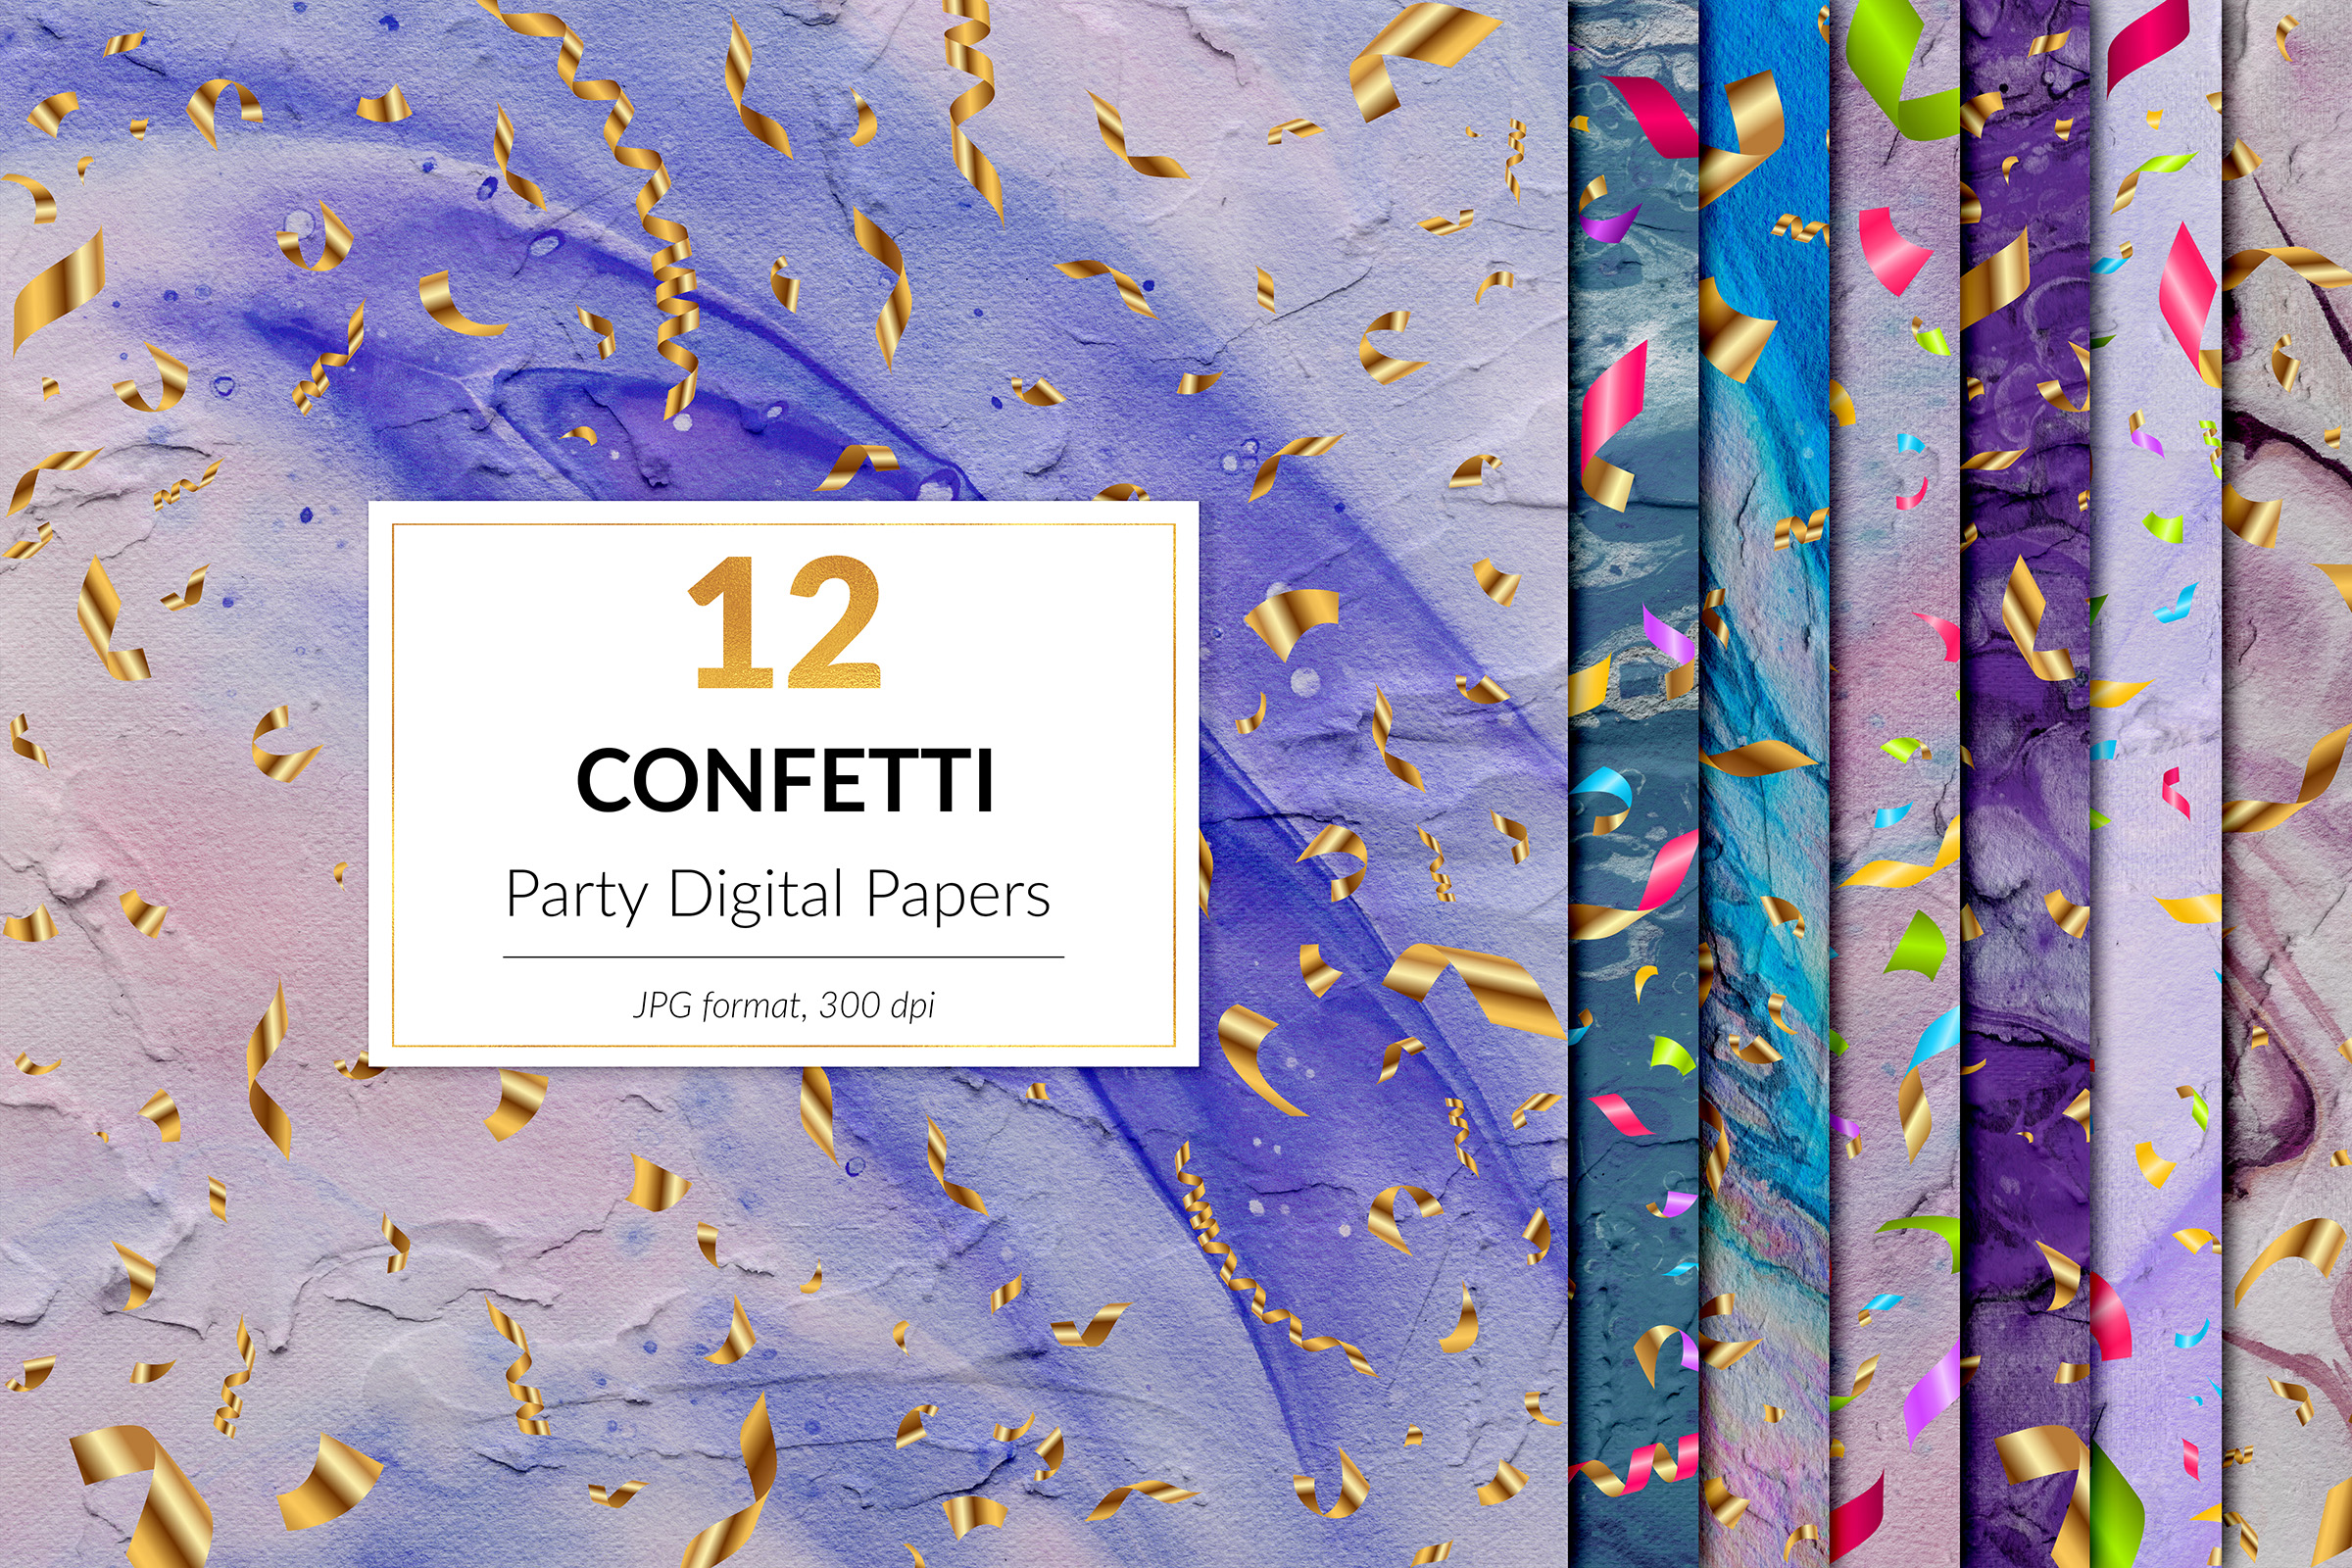 Party Digital Paper - Gold Confetti example image 1